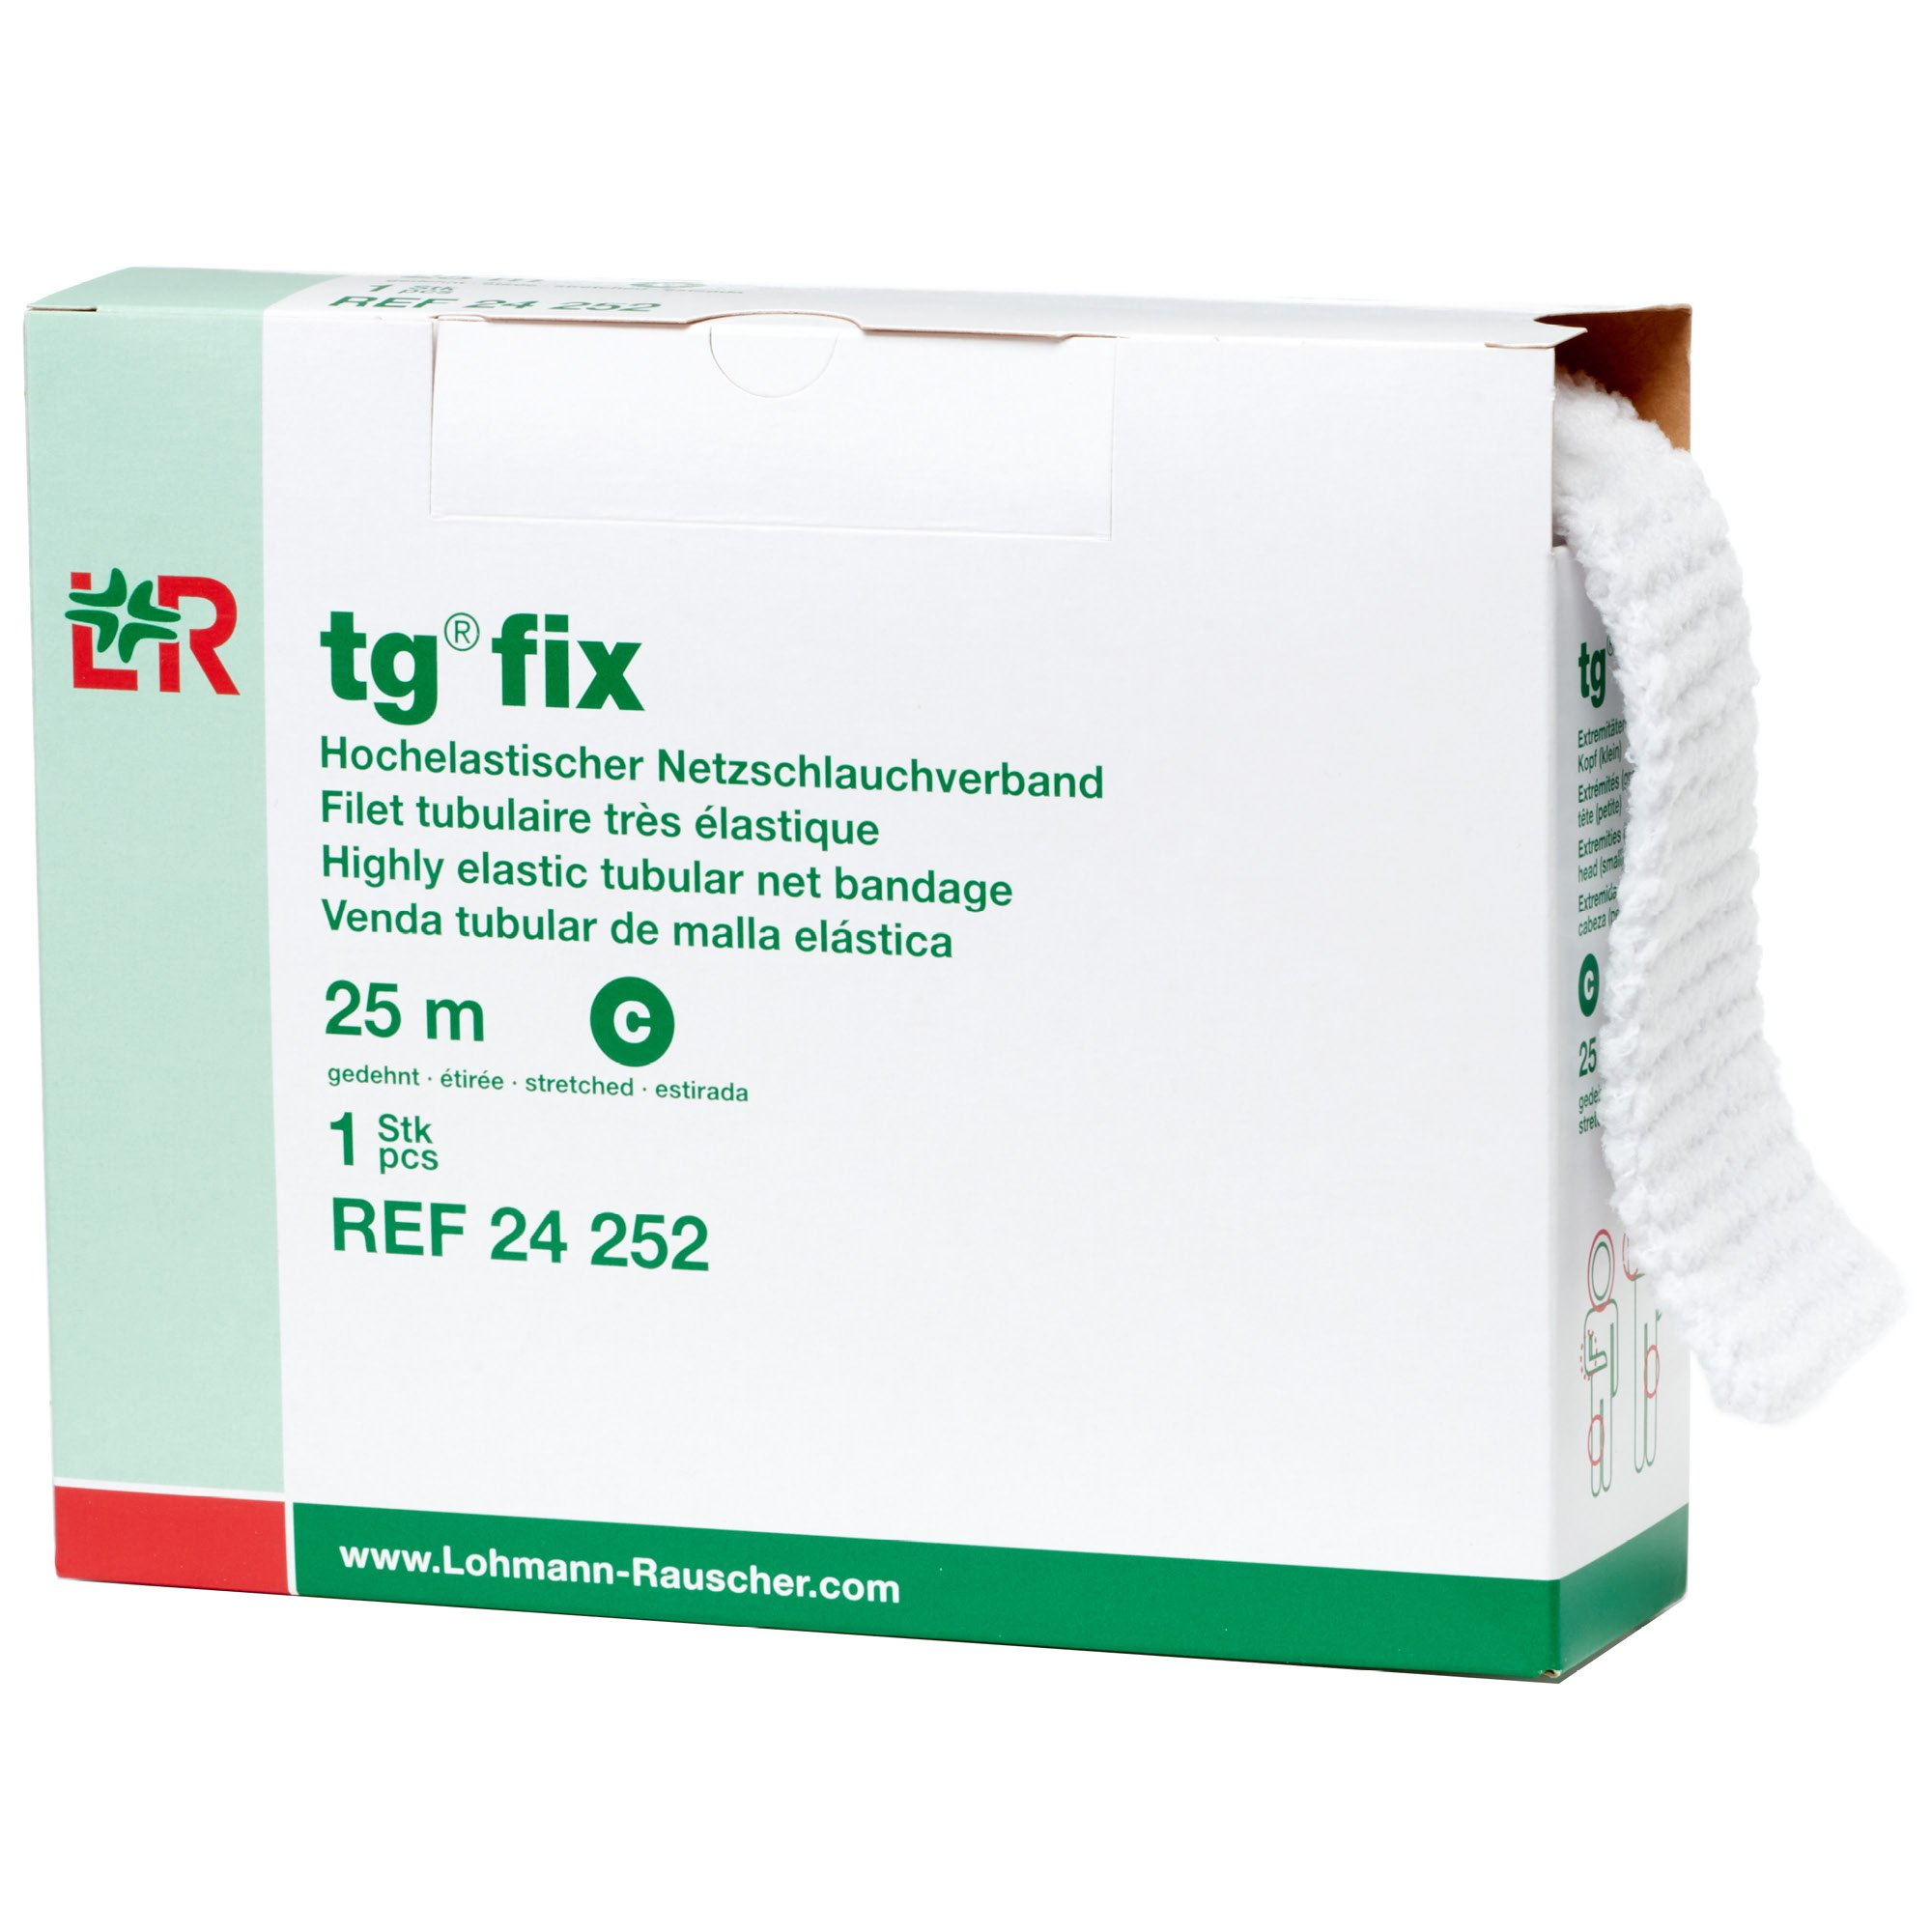 tg Fix Net Tubular Bandage, Elastic Net Wound Dressing, Bandage Retainer for Large Extremities, Size C (65.0 cm When Stretched x 2.5 m)